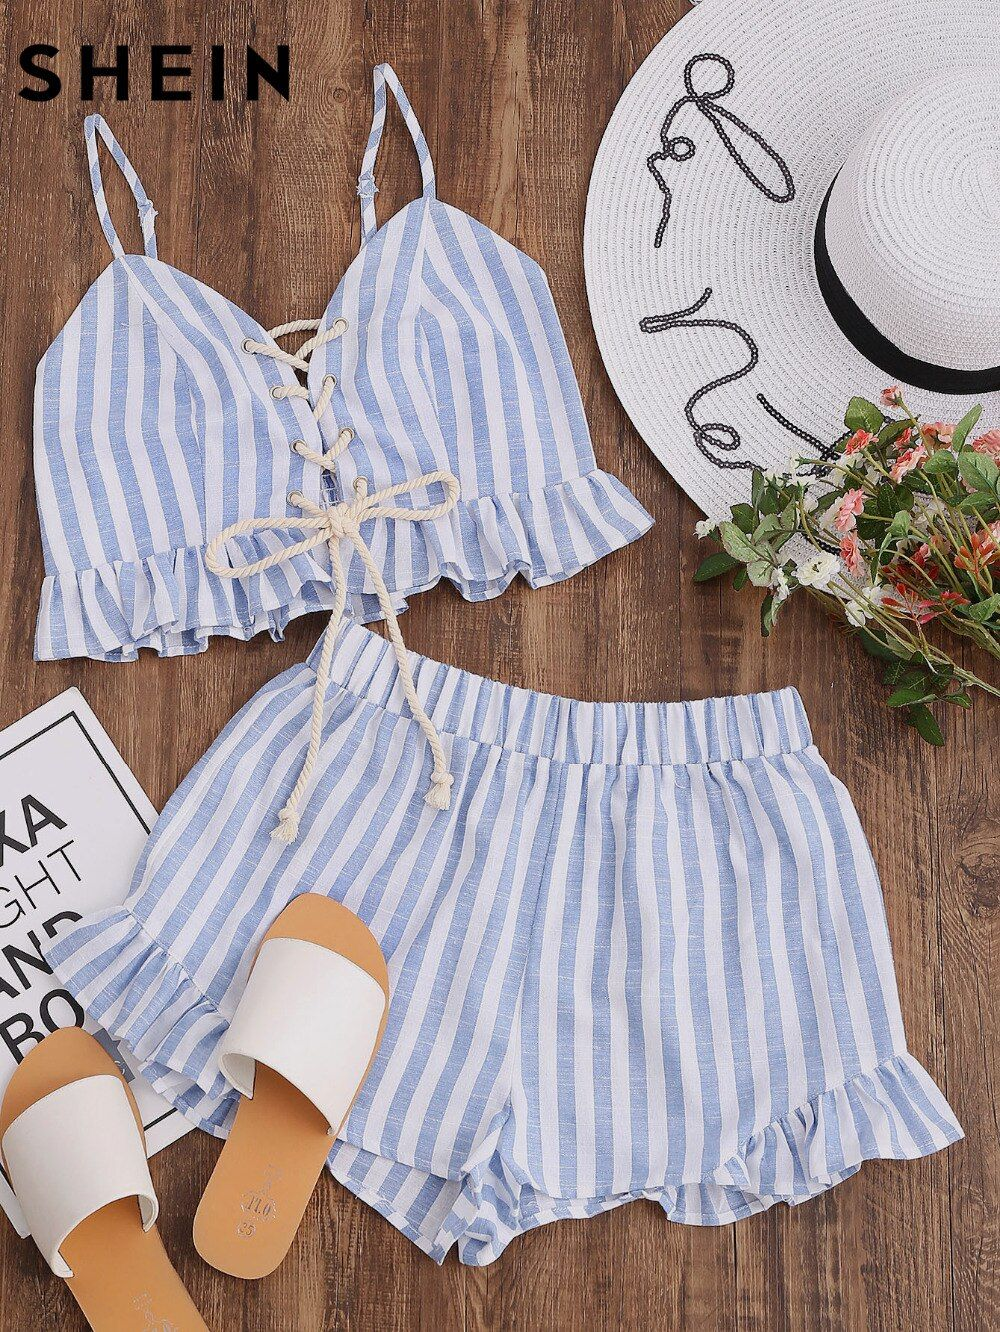 SHEIN 2017 Women Summer Two Piece Set <font><b>Blue</b></font> Striped Sleeveless Lace Up Smocked Crop Cami and Ruffle Shorts Co-Ord